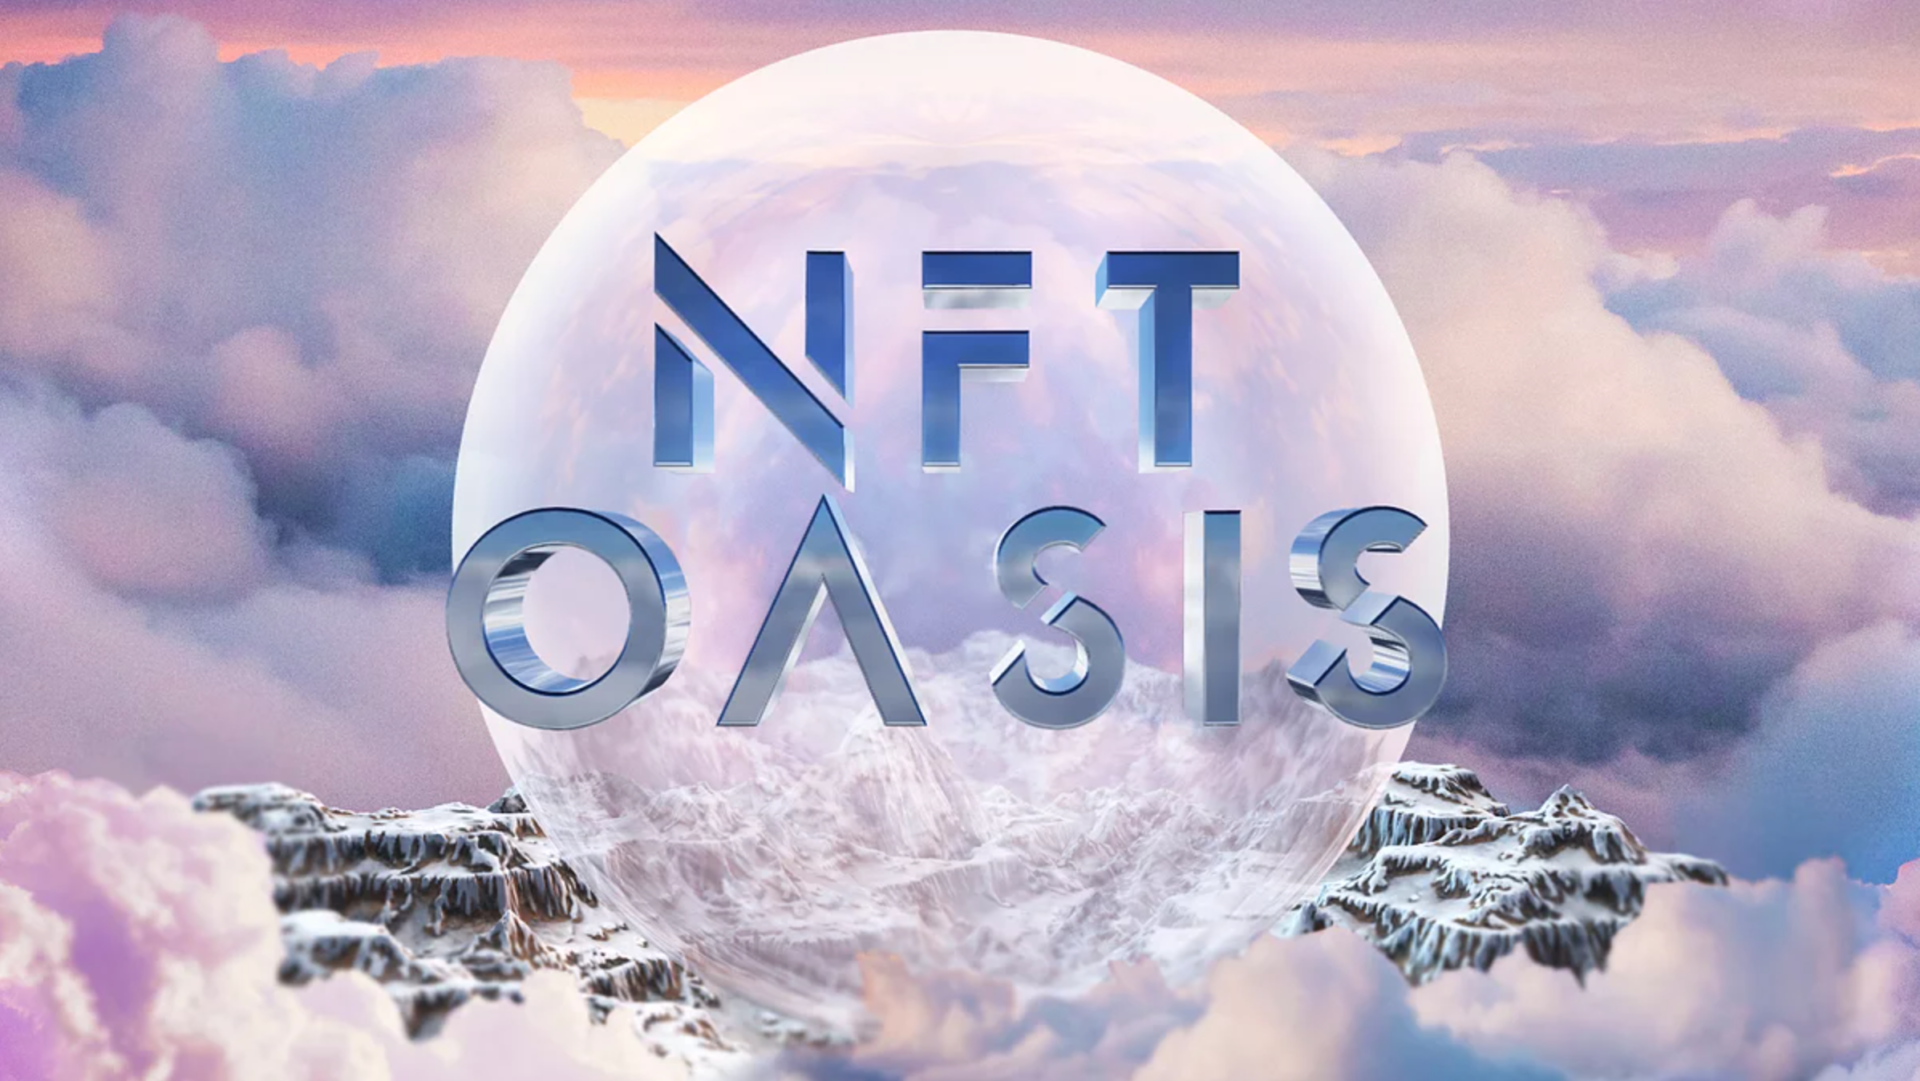 NFT Oasis Raises $4.4 Million In Financing And Opens A Bridge To The Metaverse Enabling Creators To Reach The Masses Using Virtual Reality